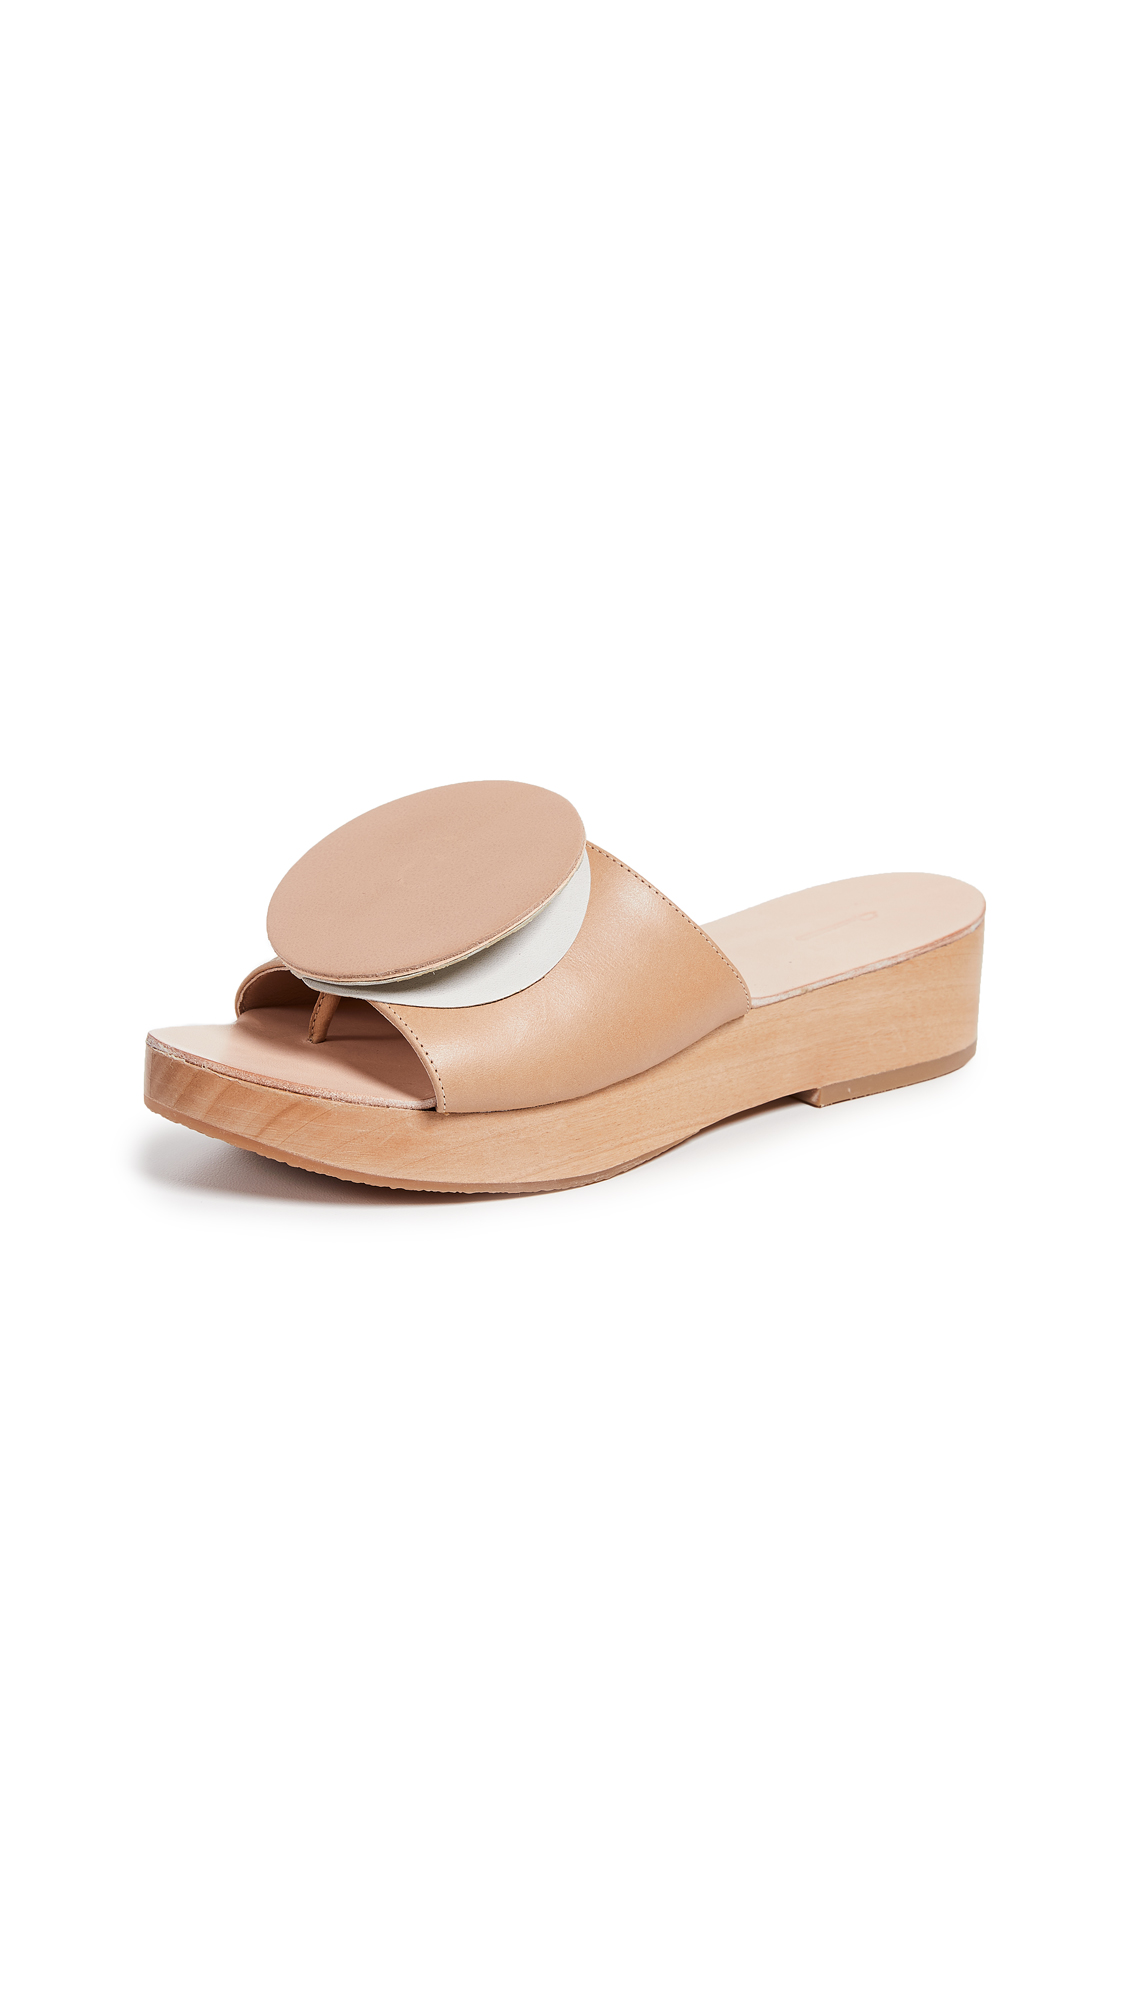 The Palatines Editio Origami Slides - Tan/Lunar